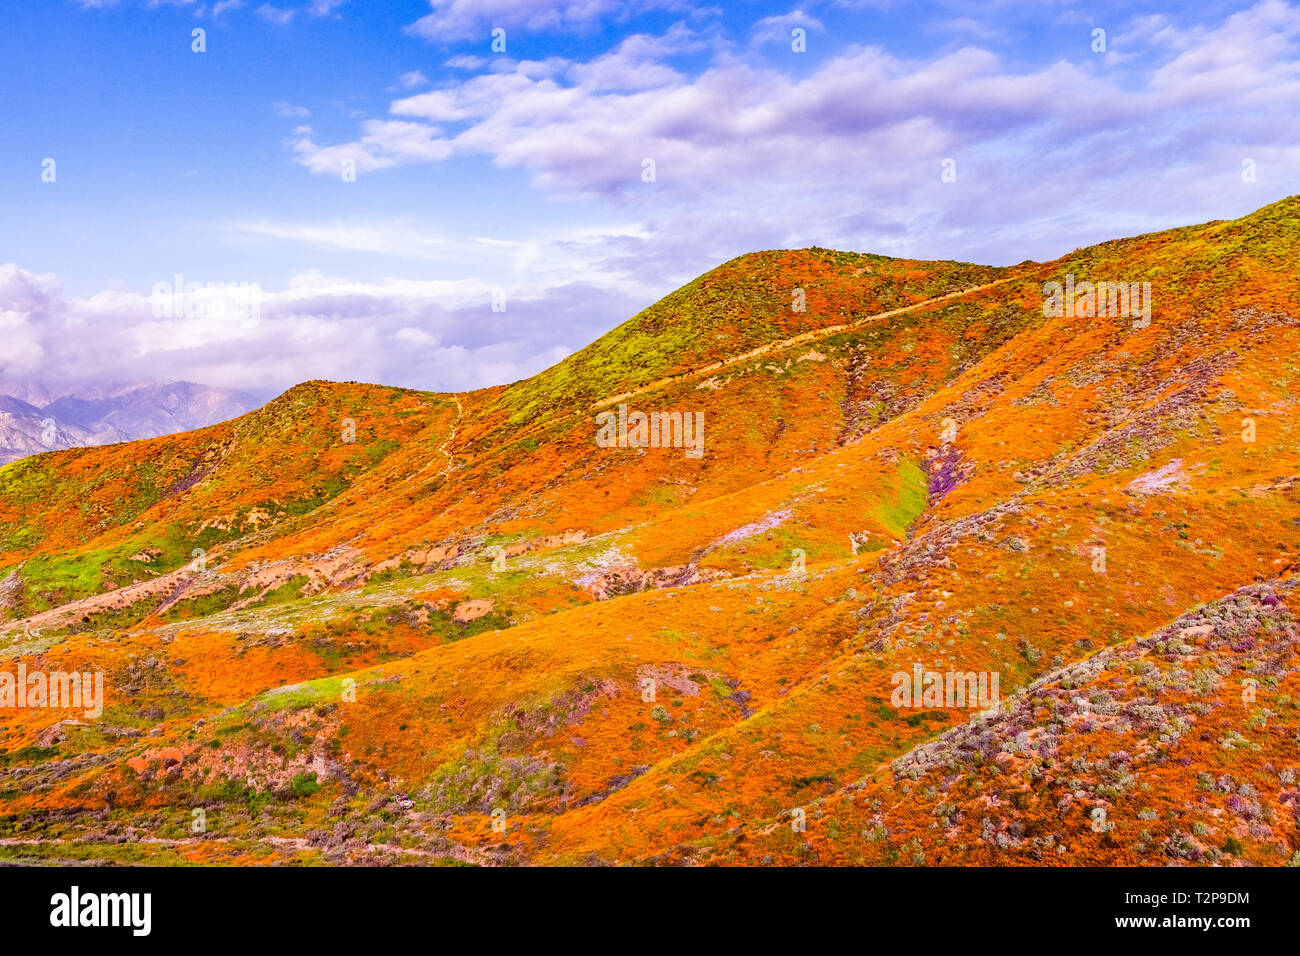 Landscape in Walker Canyon during the superbloom, California poppies covering the mountain valleys and ridges, Lake Elsinore, south California - Stock Image